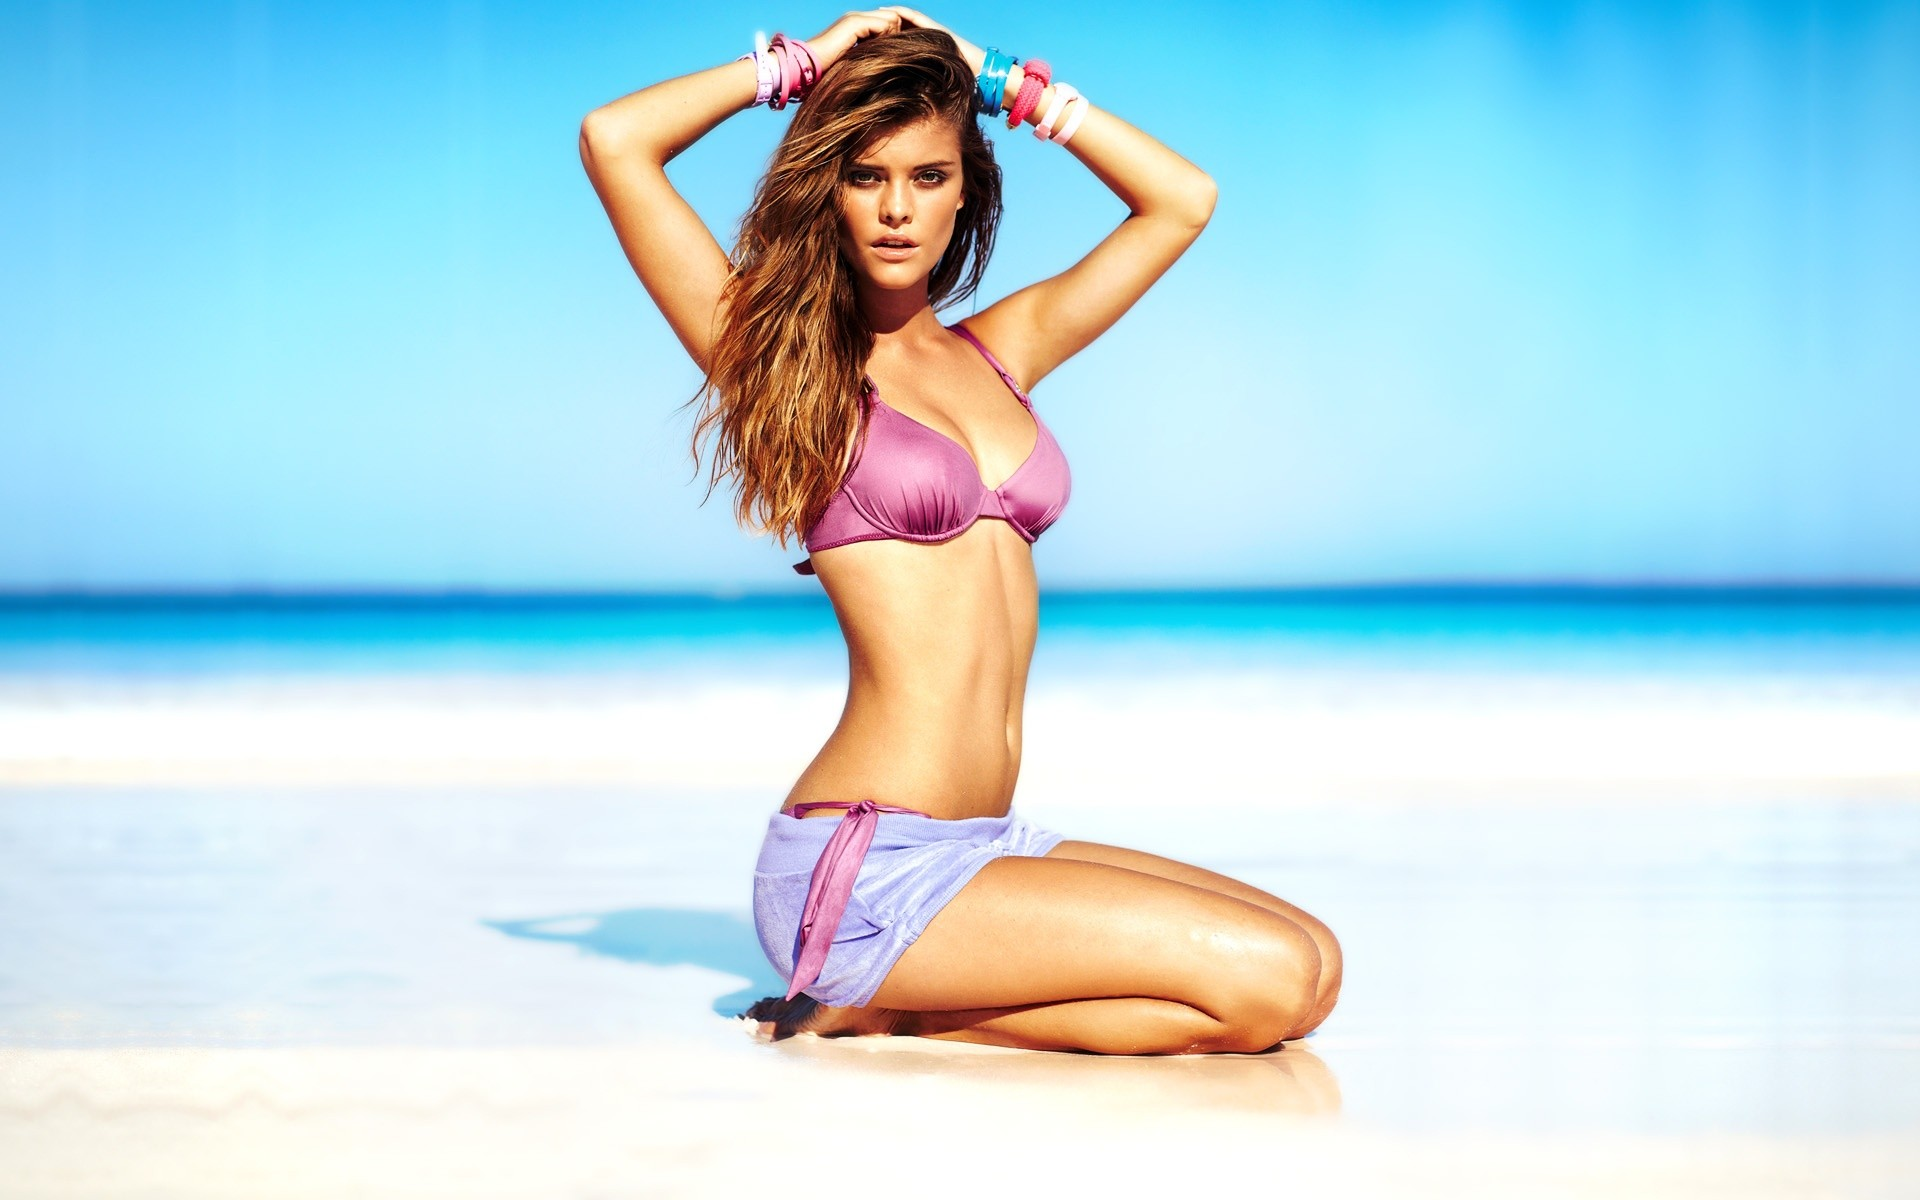 nina agdal bathing suit wallpaper 54310